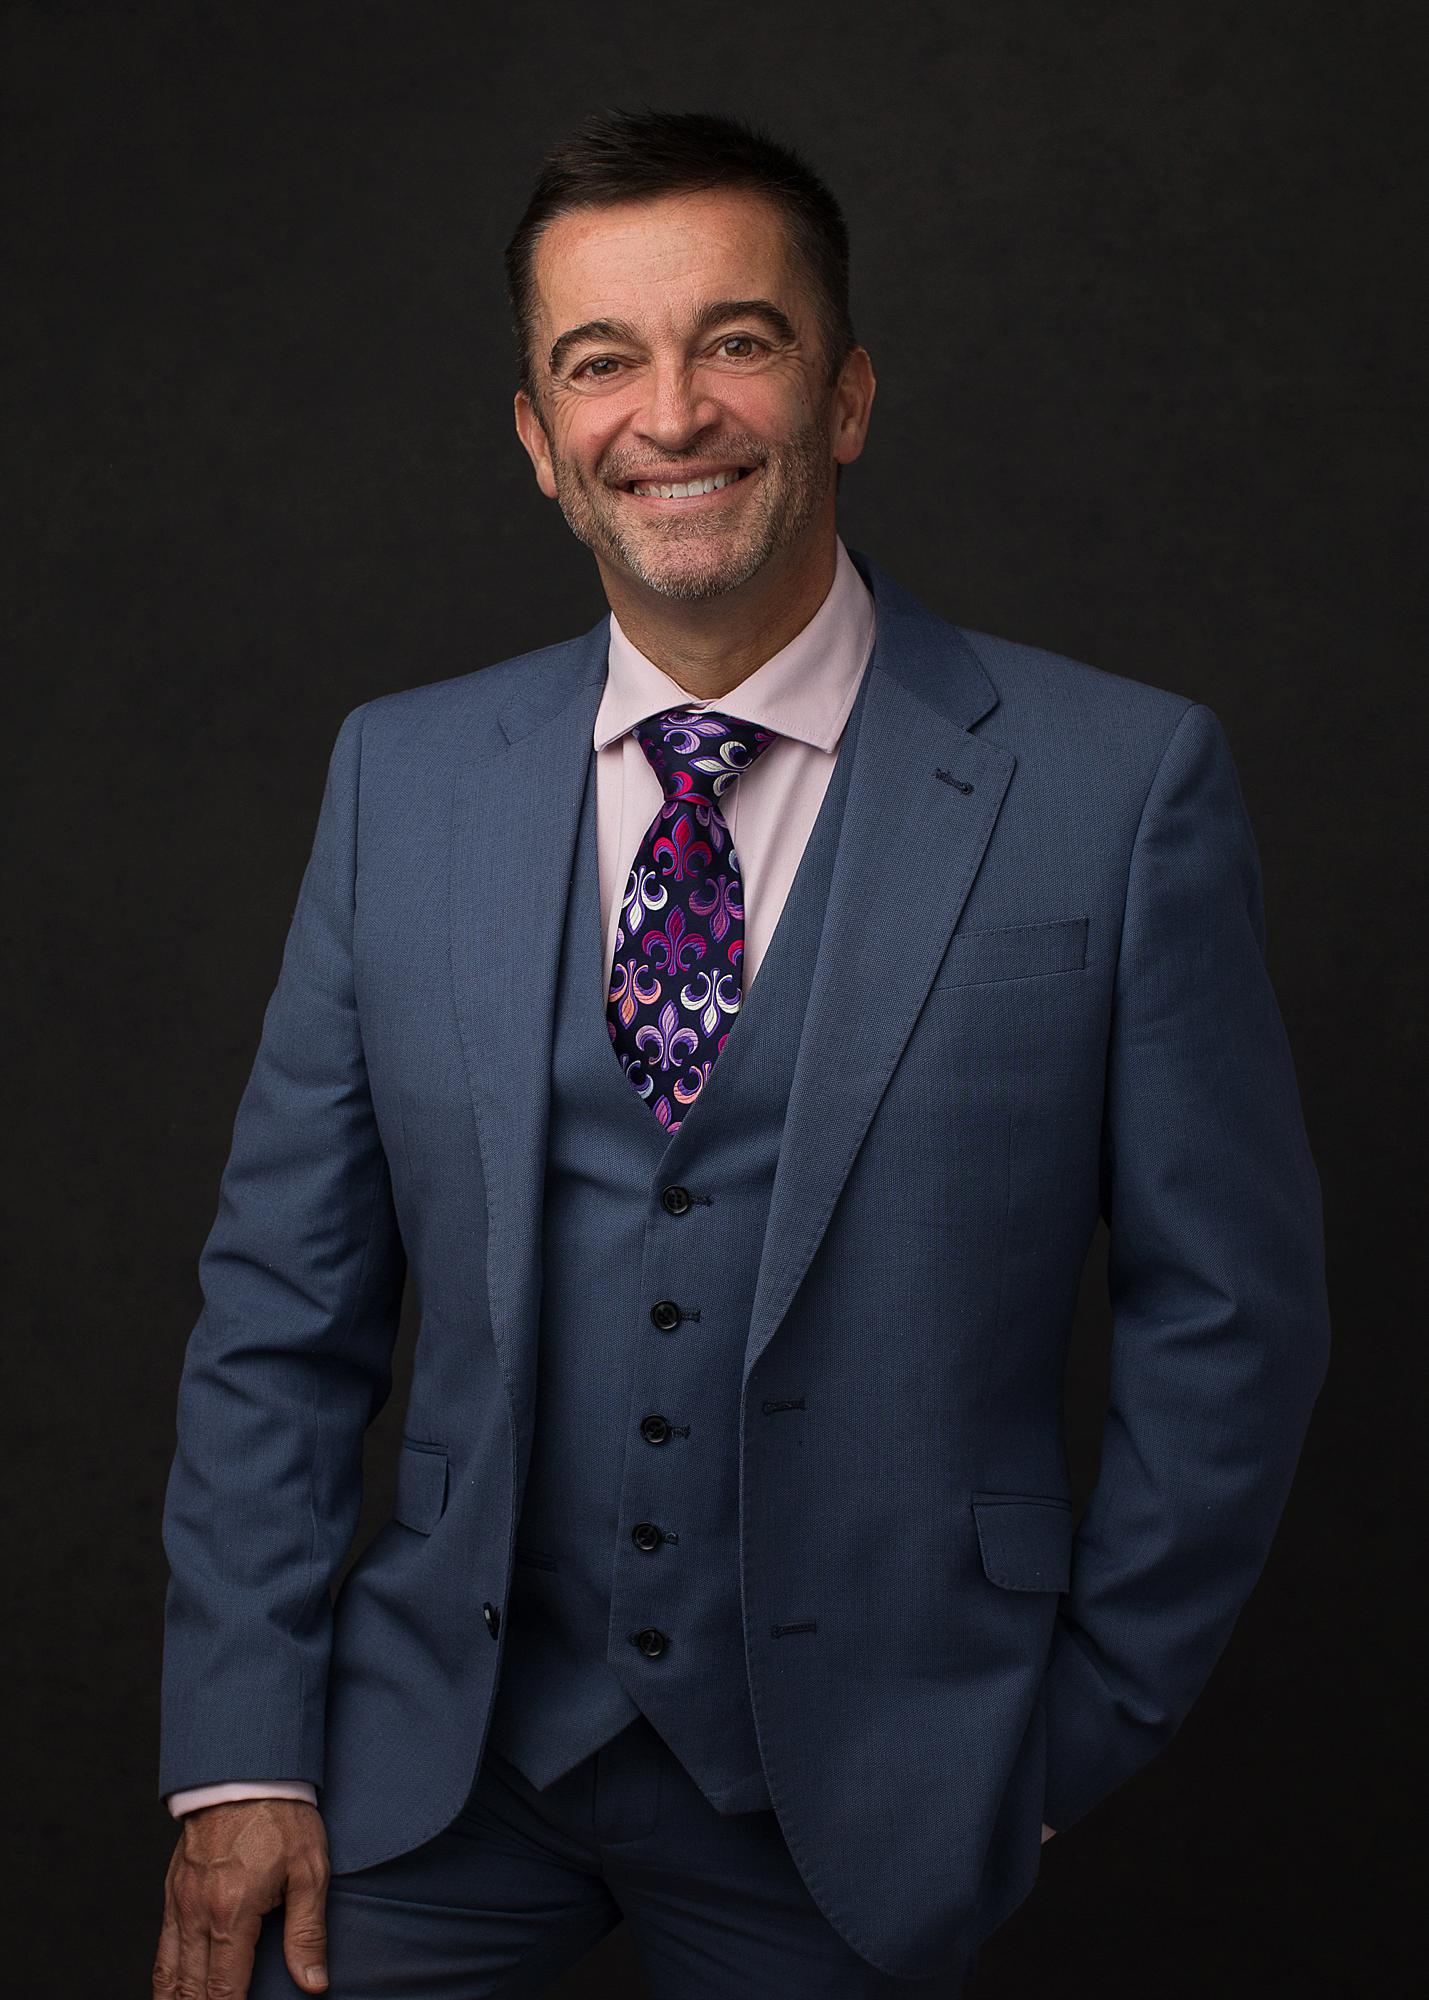 Man in a three piece suit smiles during a studio Personal Branding Photoshoot in Stoke By Clare, Suffolk